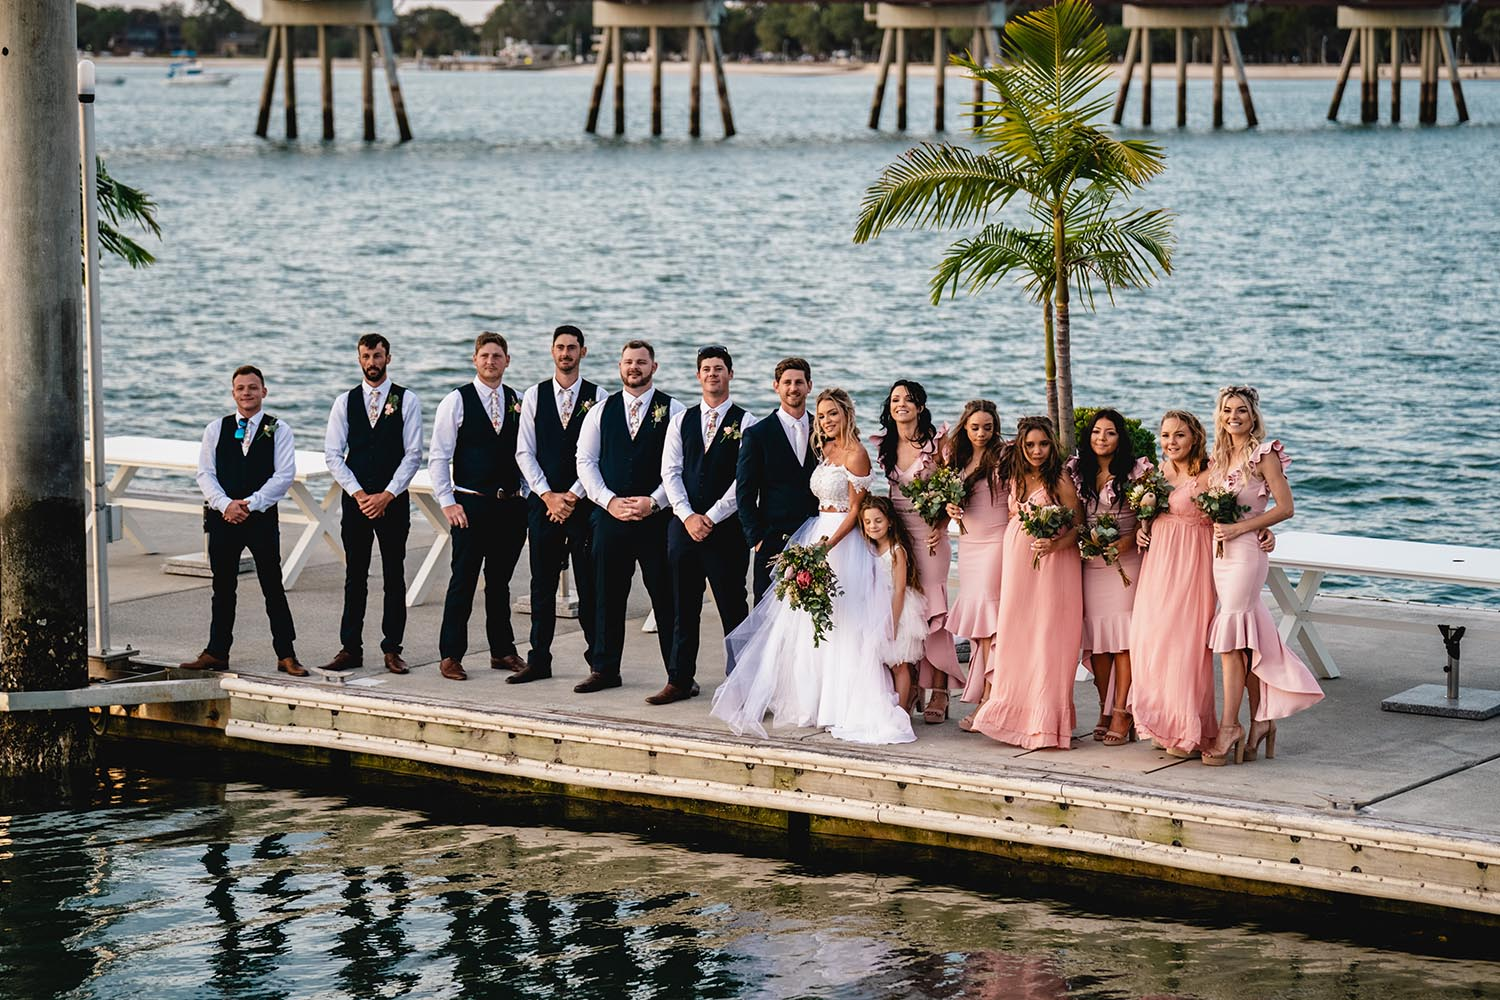 Wedding Photography - Bridal Party on Wharf